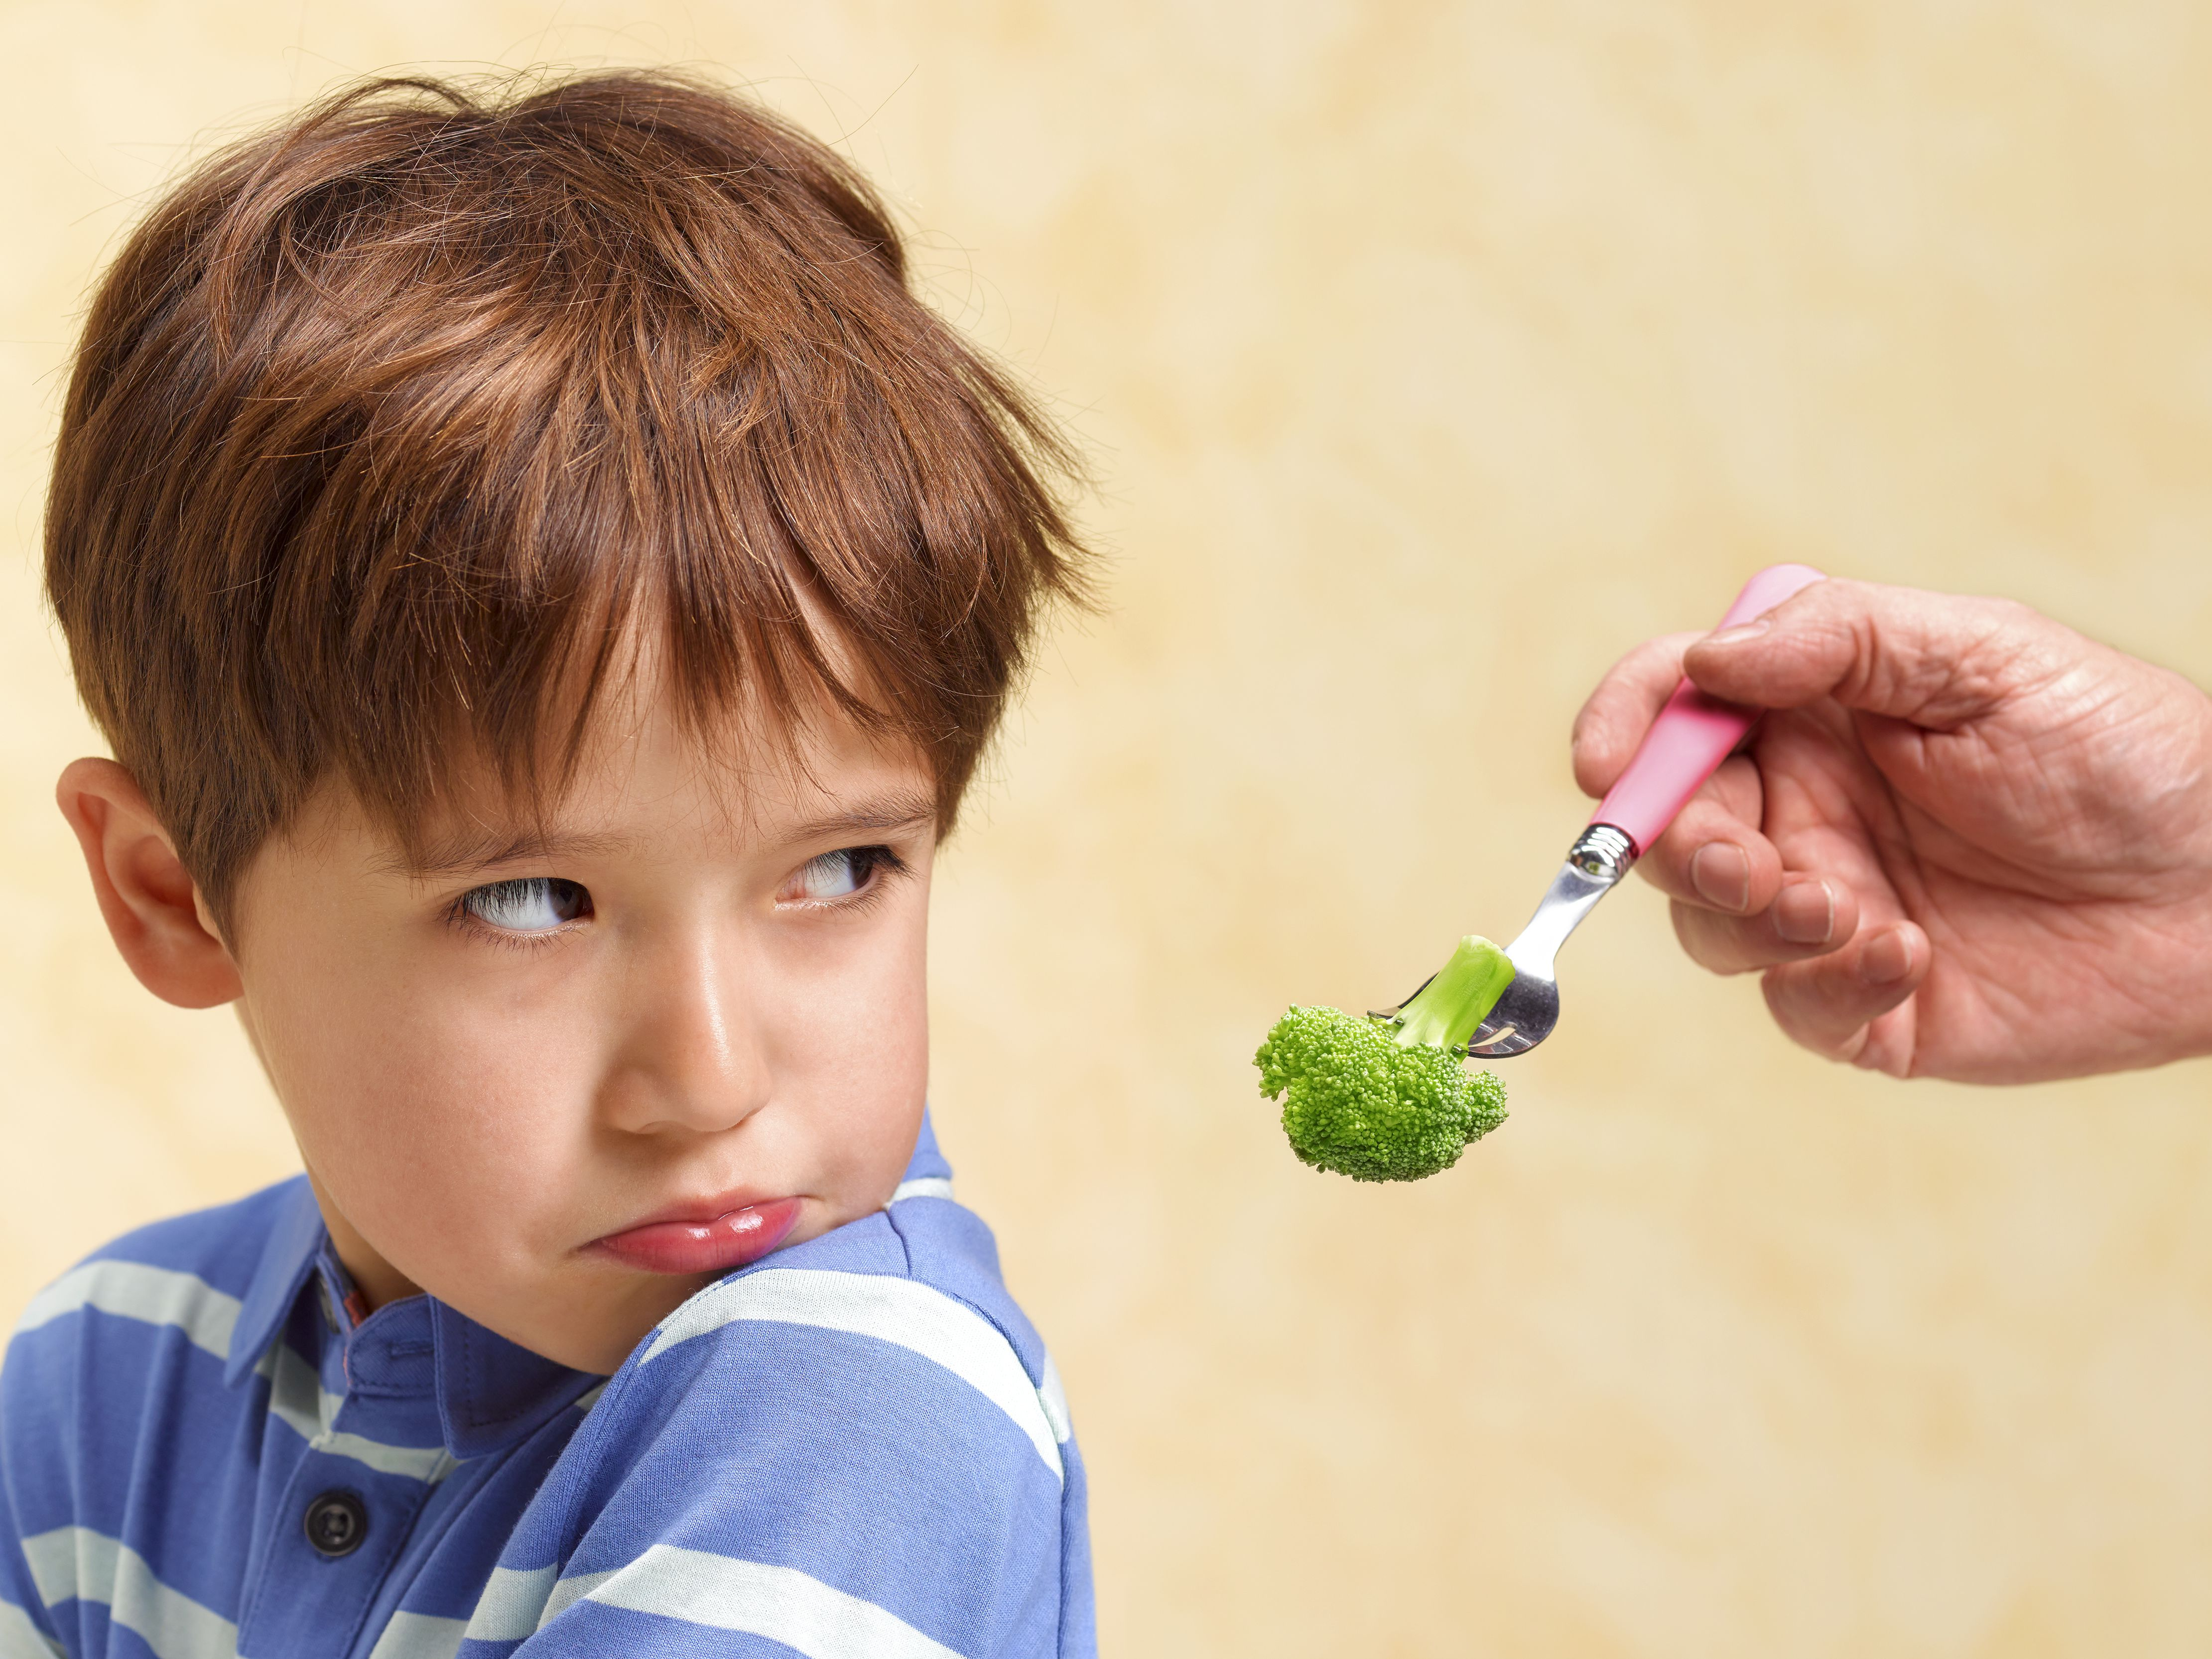 Getting Kids to Eat More Vegetables